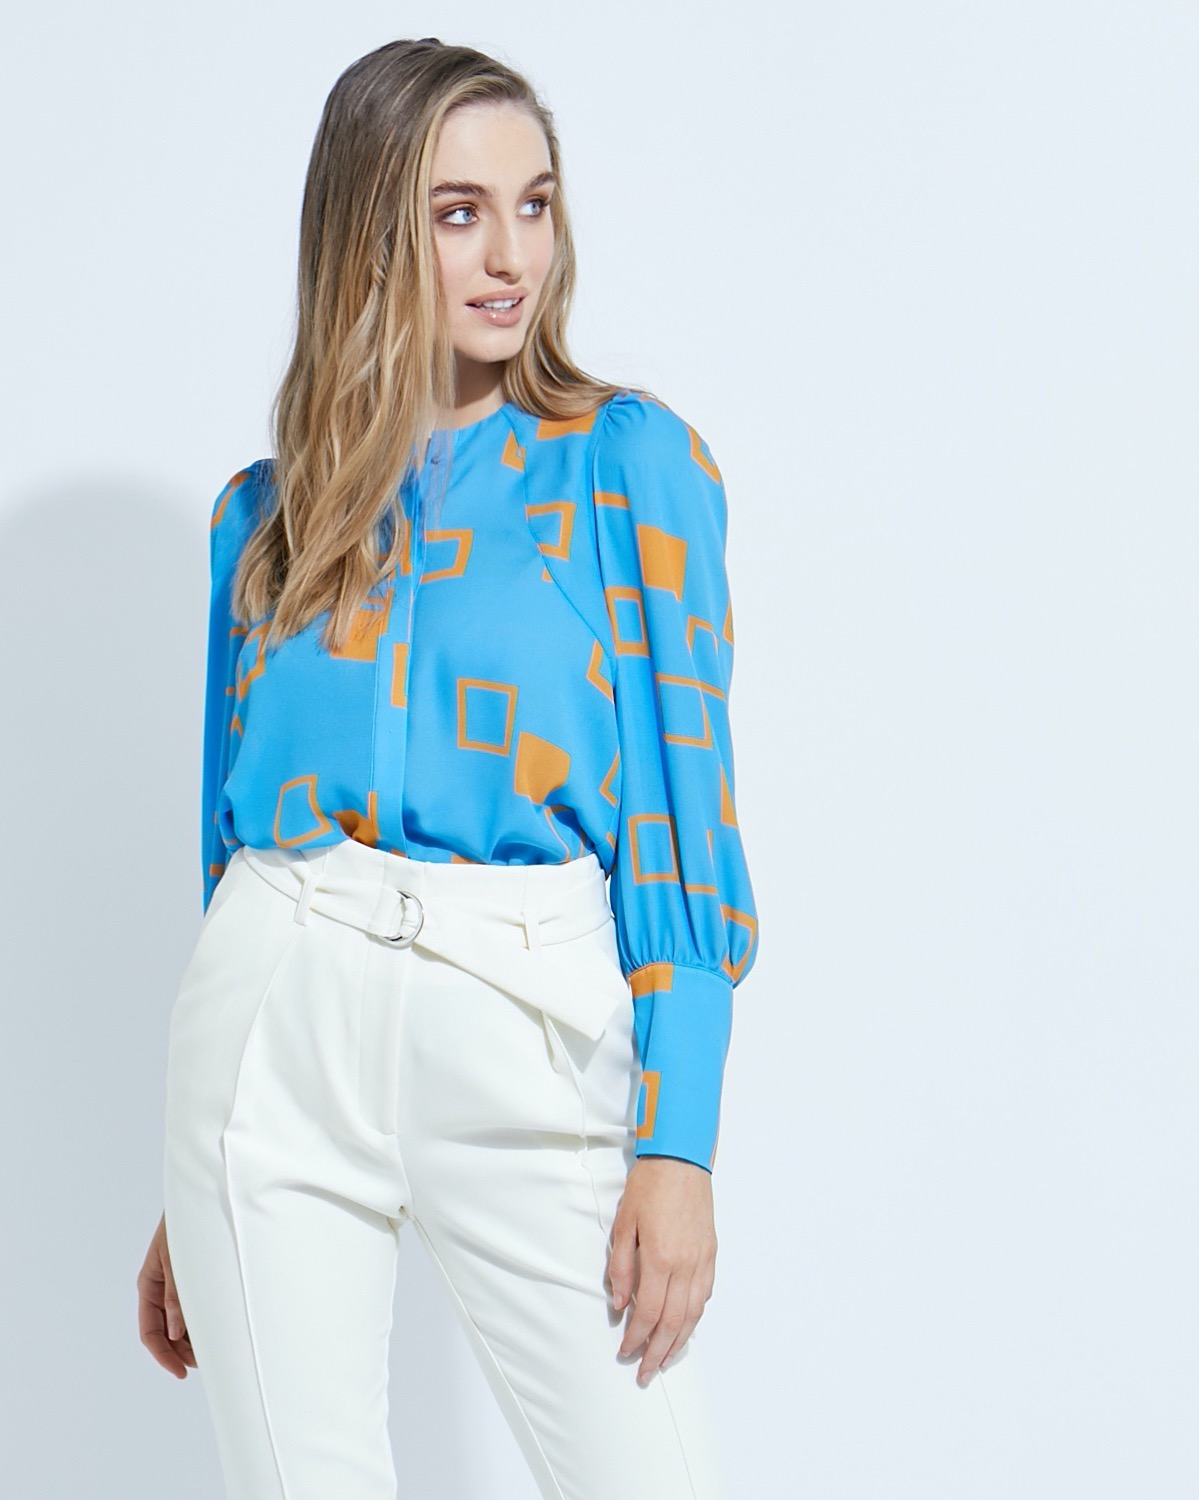 Lennon Courtney at Dunnes Stores New Lauren Print Blouse